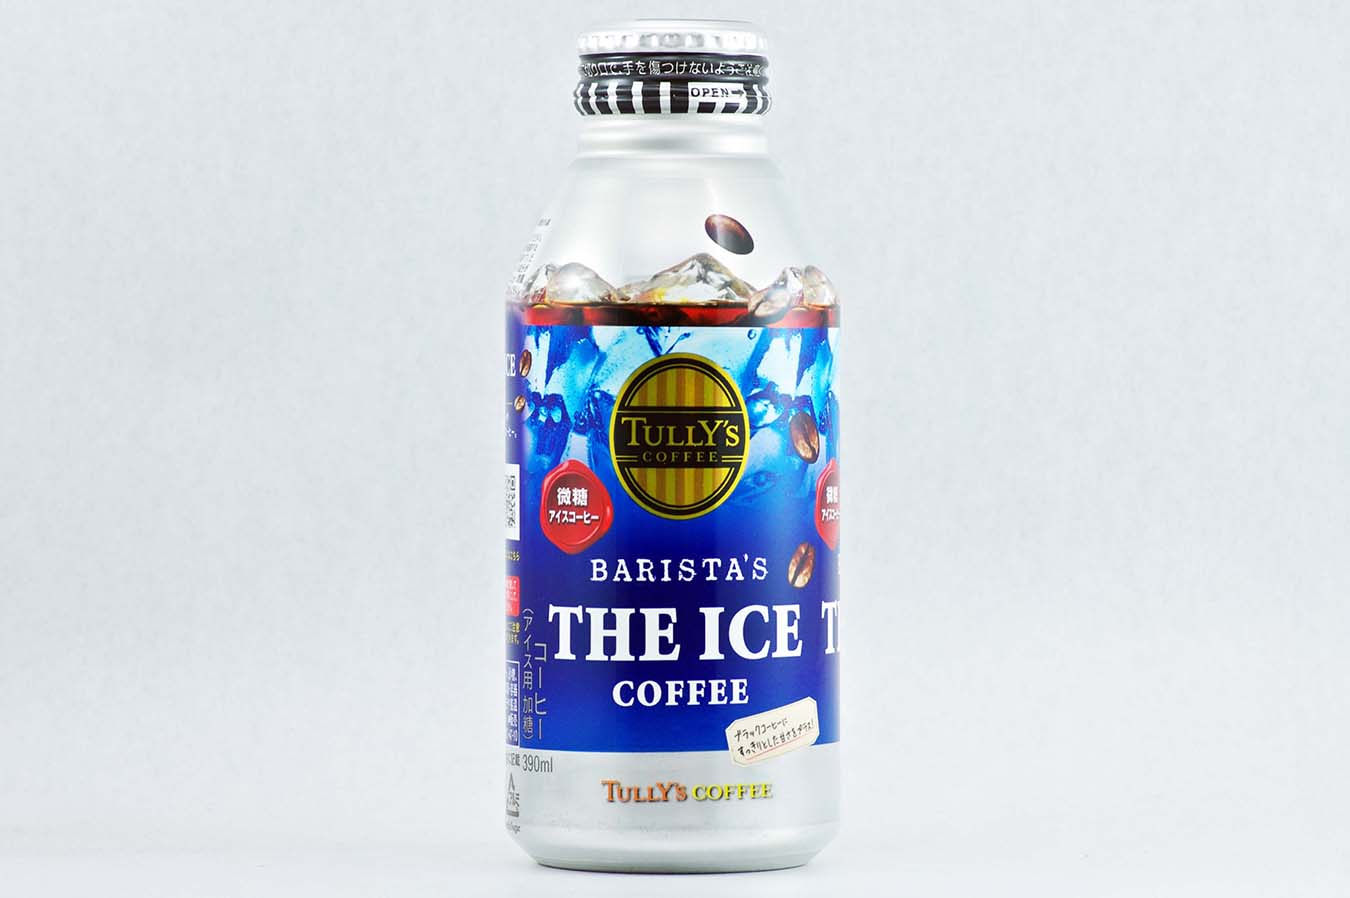 TULLY'S COFFEE BARISTA'S THE ICE COFFEE 2015年6月